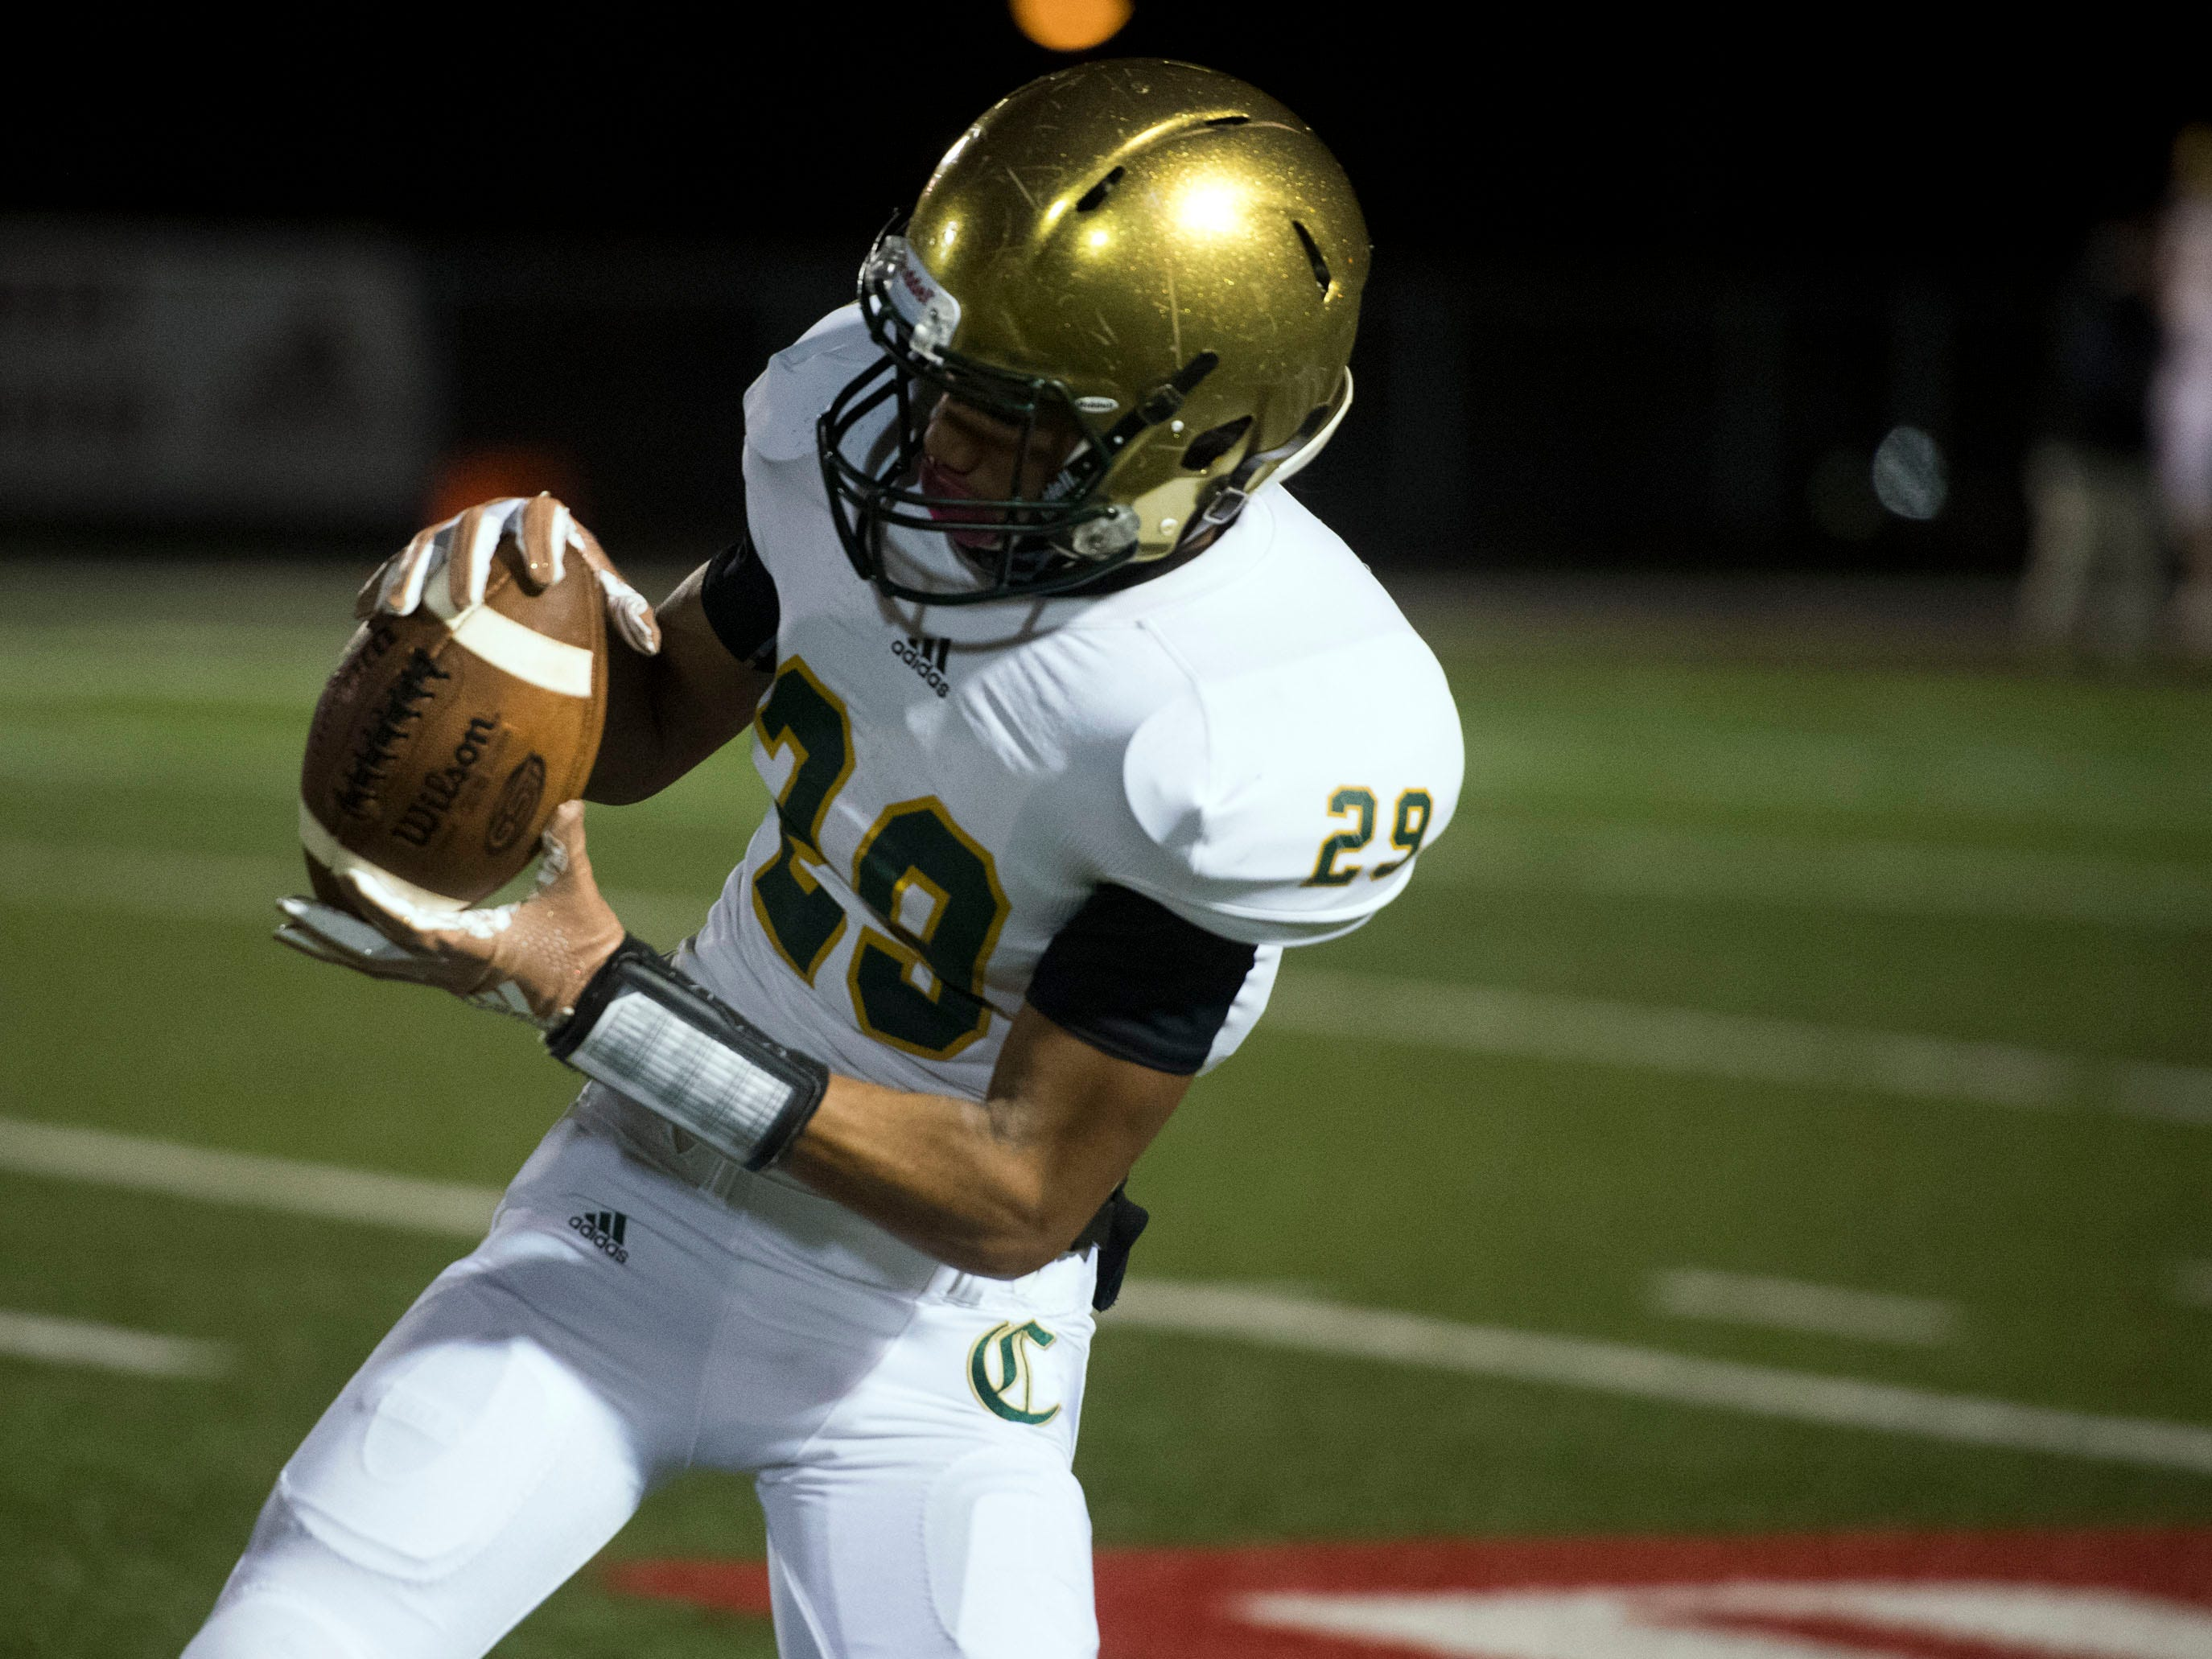 Knoxville Catholic's Isaac Franklin (29) warms up before the start of the playoff game against Fulton on Friday, November 9, 2018.